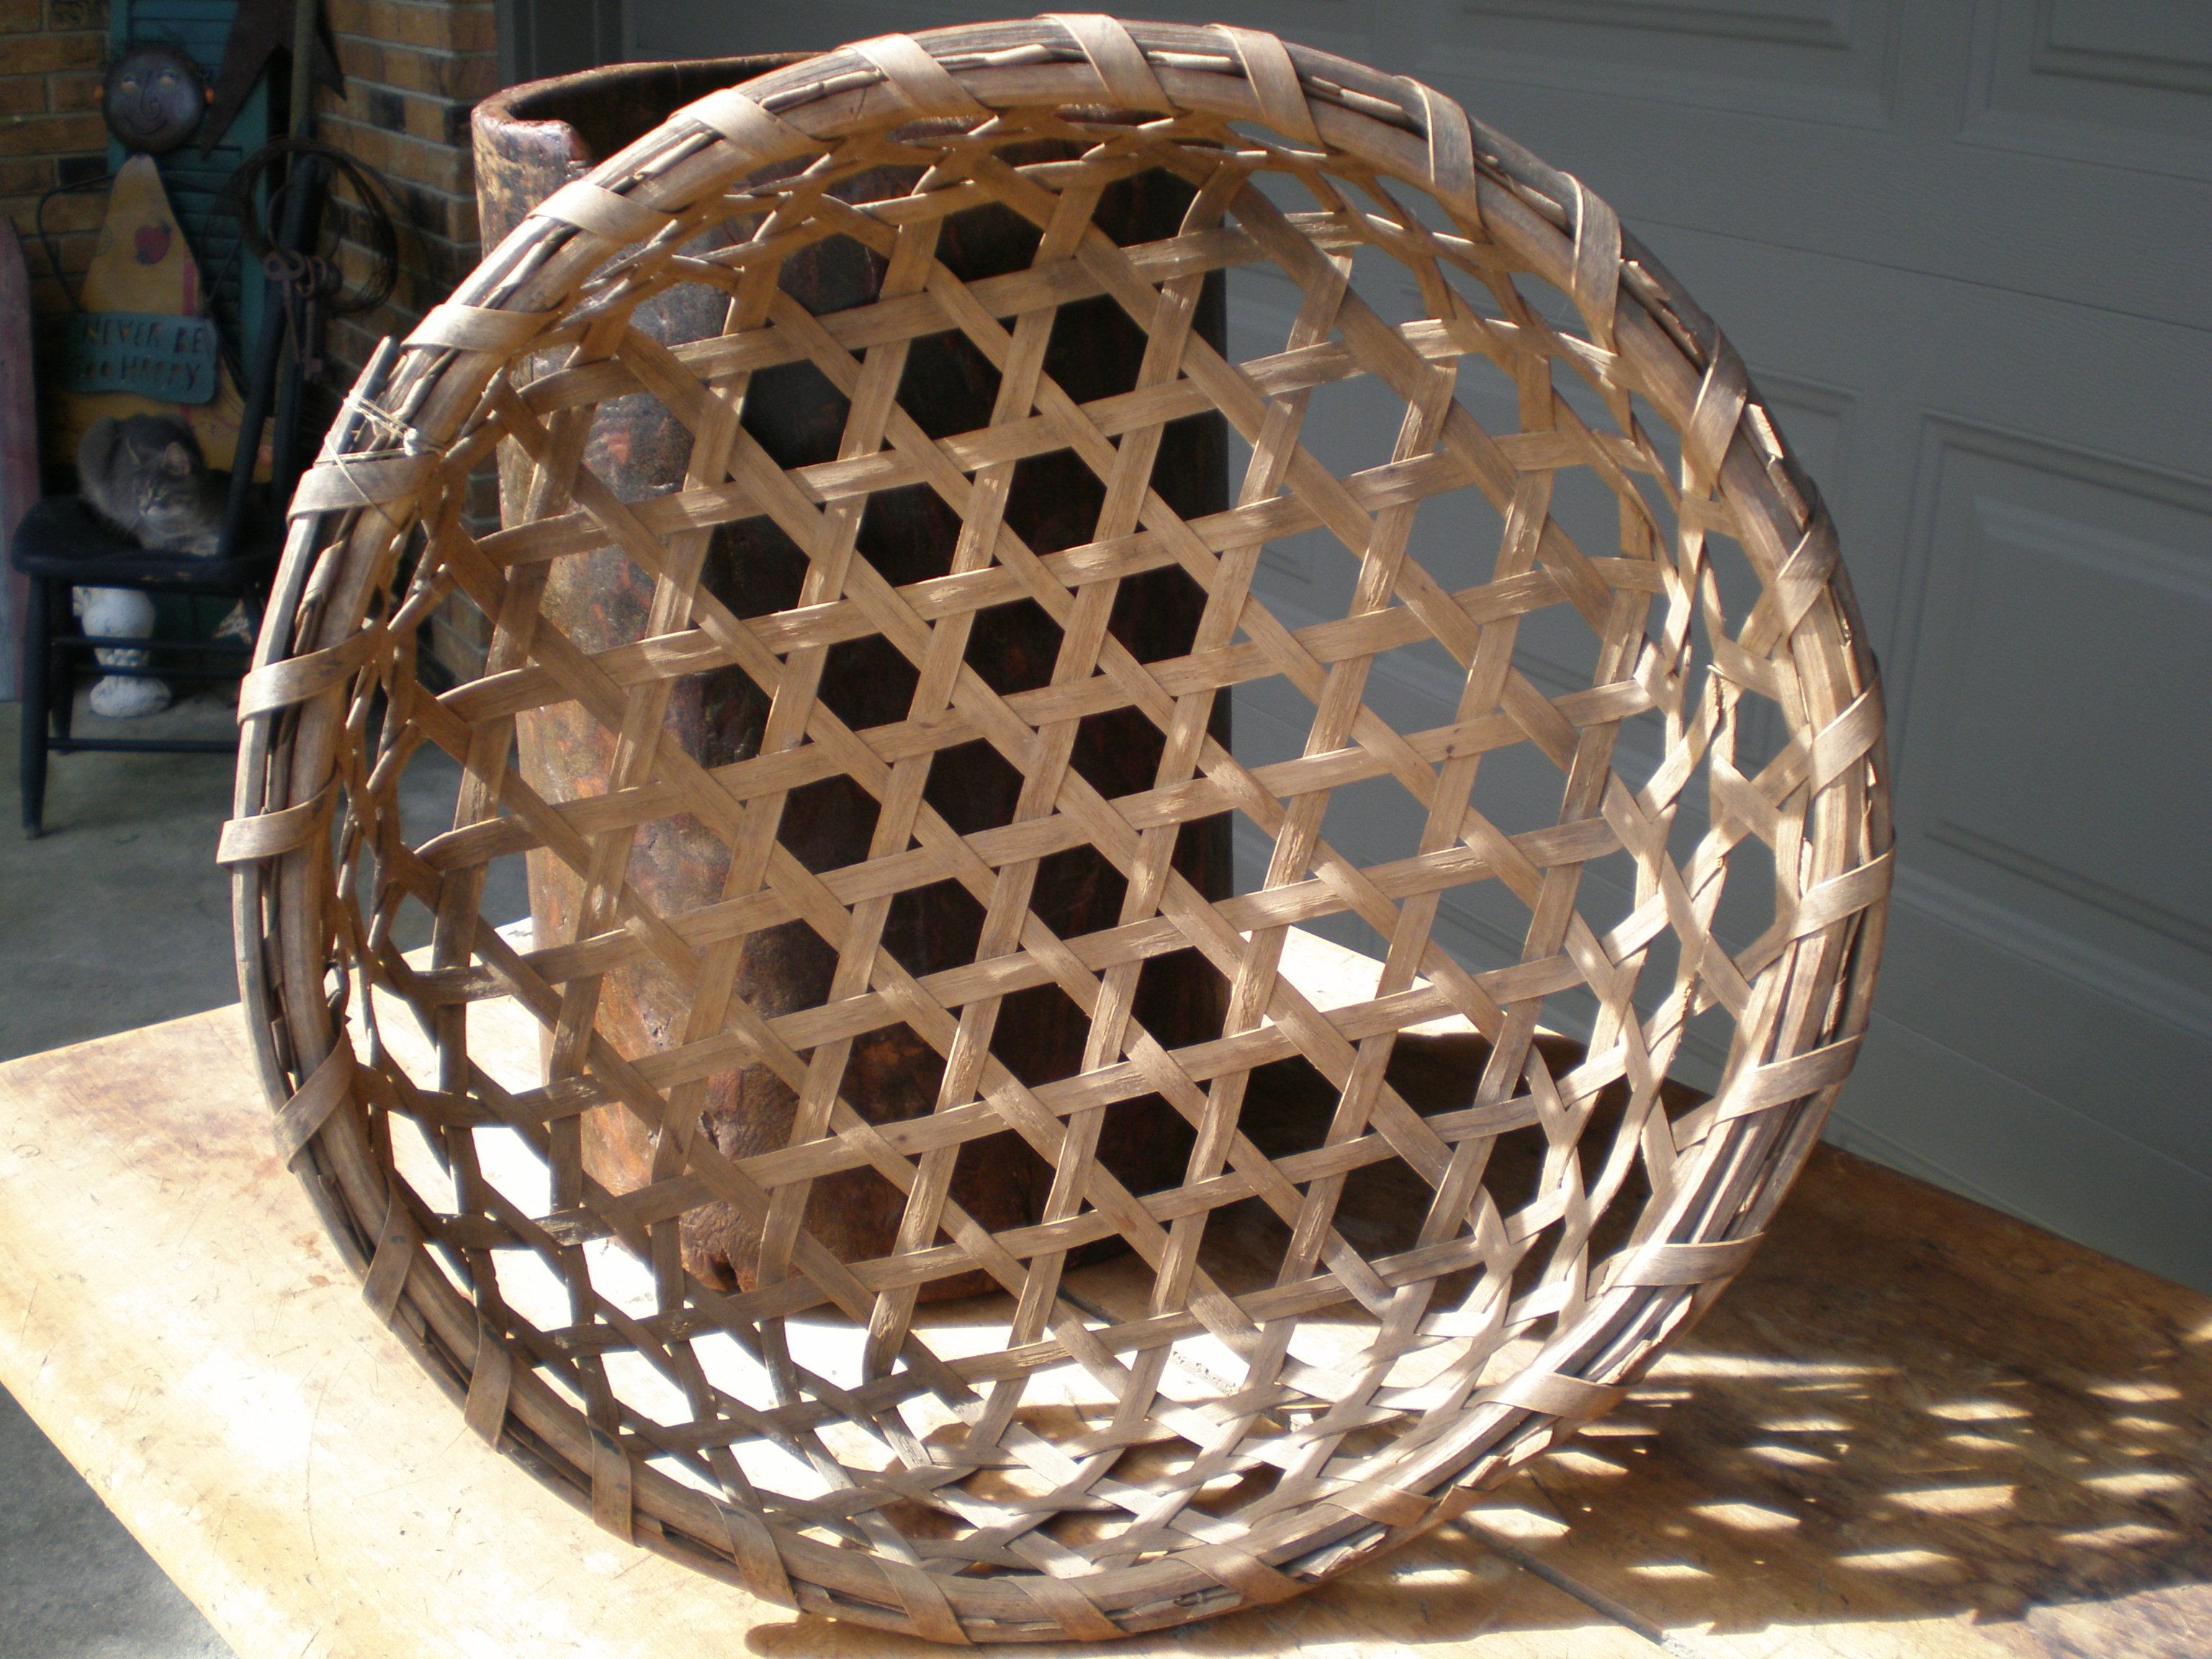 Early Cheese Basket For Sale Sense Of Country Antiques With